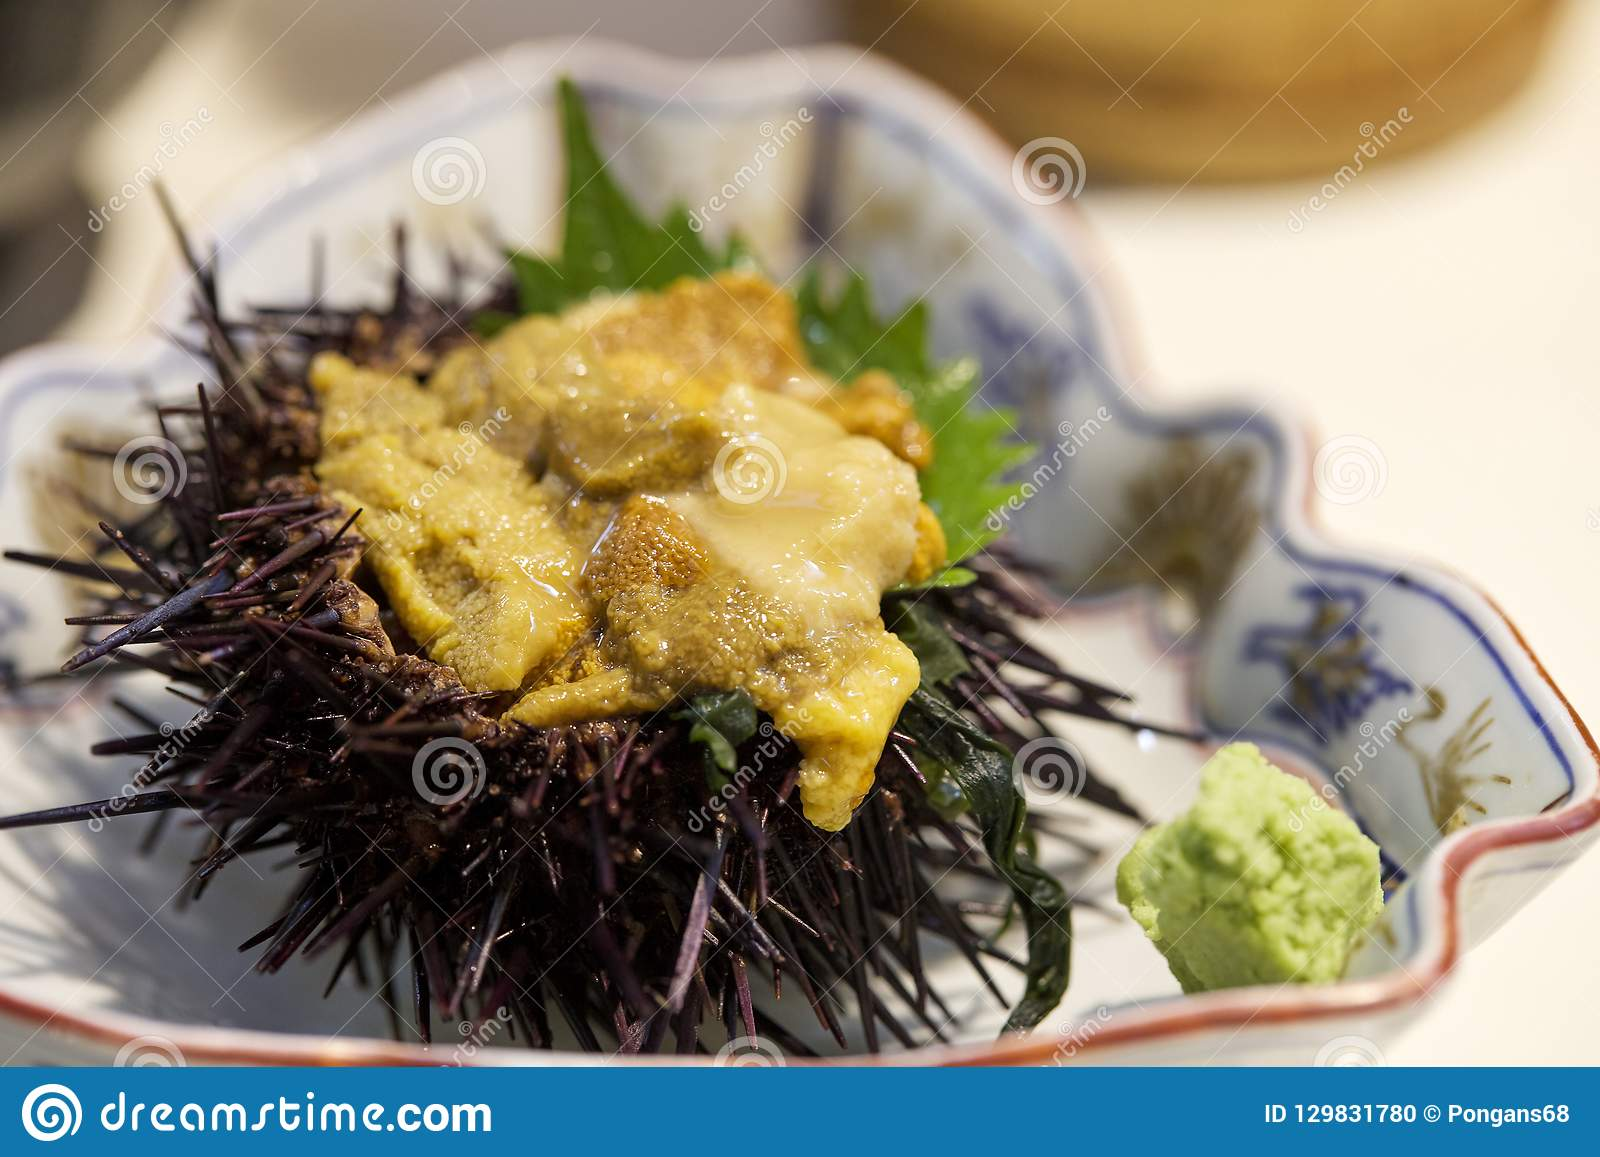 Japanese Delicious Sea Urchin Meal Stock Photo Image Of Tasty